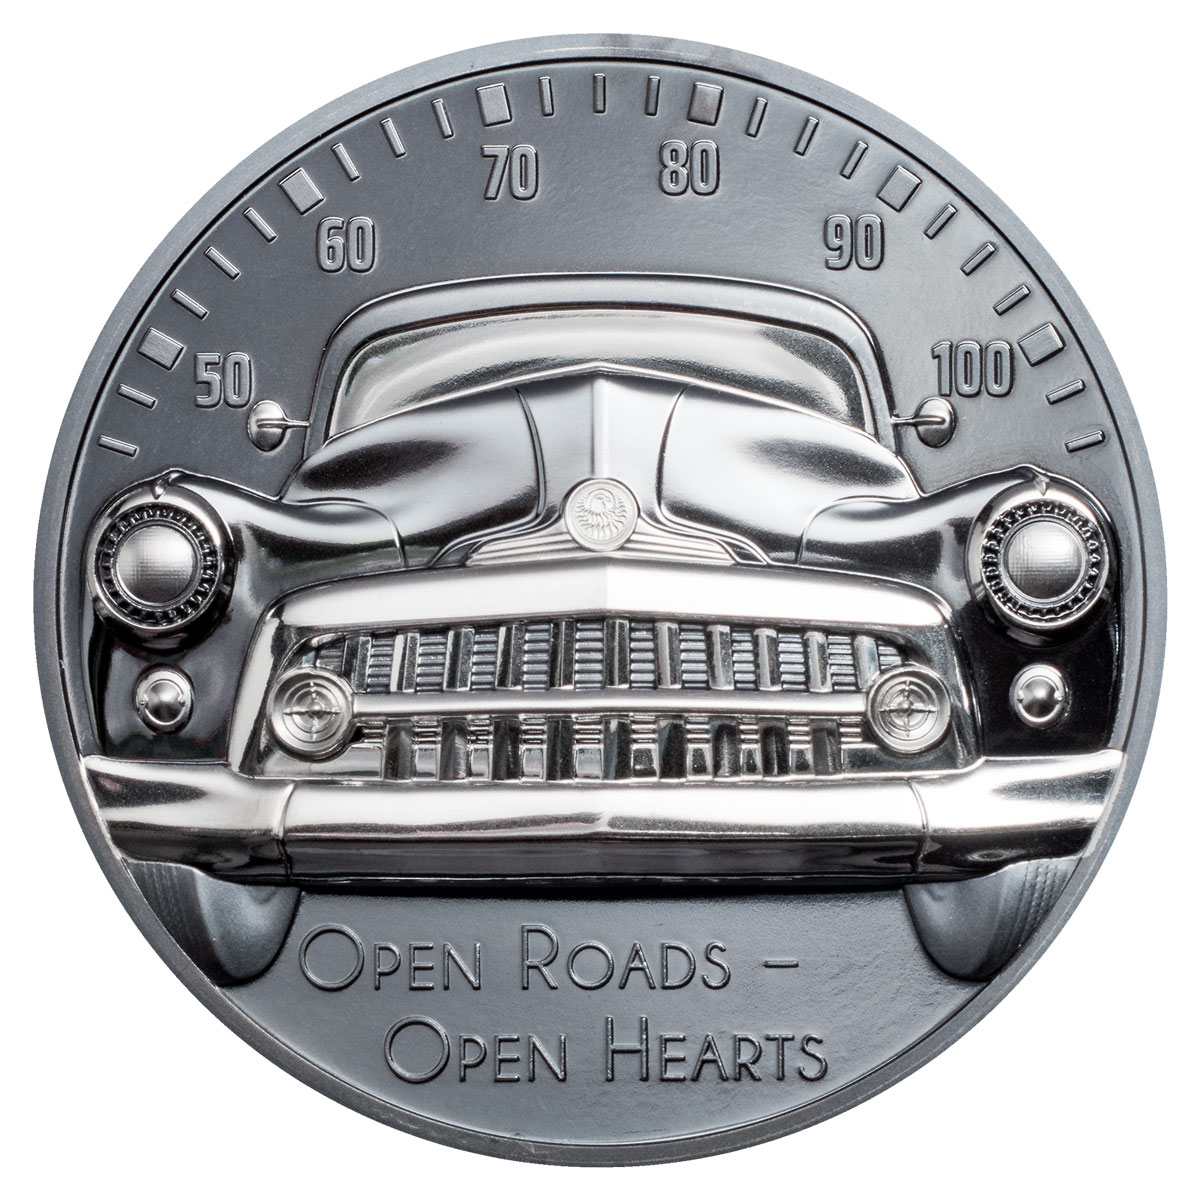 2021 Cook Islands Classic Car Ultra High Relief 2 oz Silver Black Proof $10 Coin GEM Proof OGP